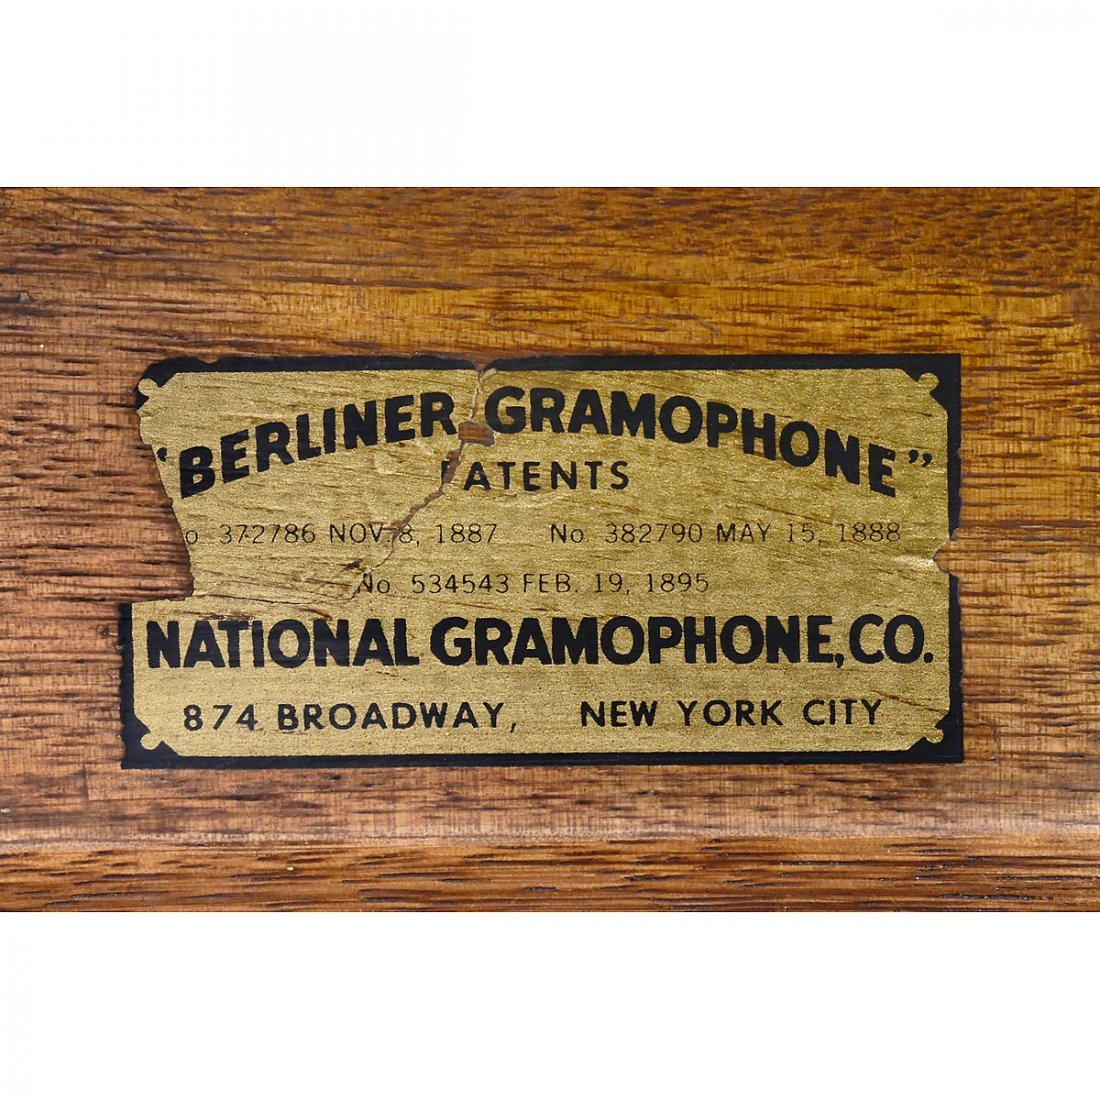 Emile Berliner-Style Hand-Cranked Gramophone - 6